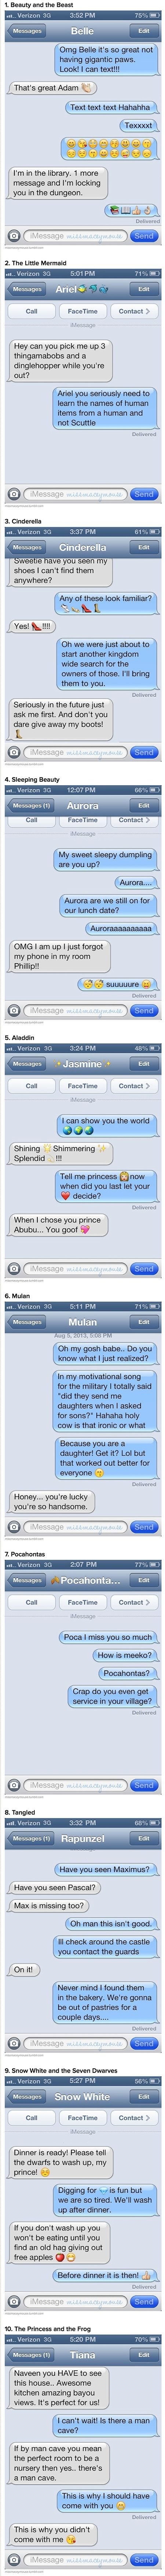 Here are some funny and weird text messages from Disney princesses to their princes.